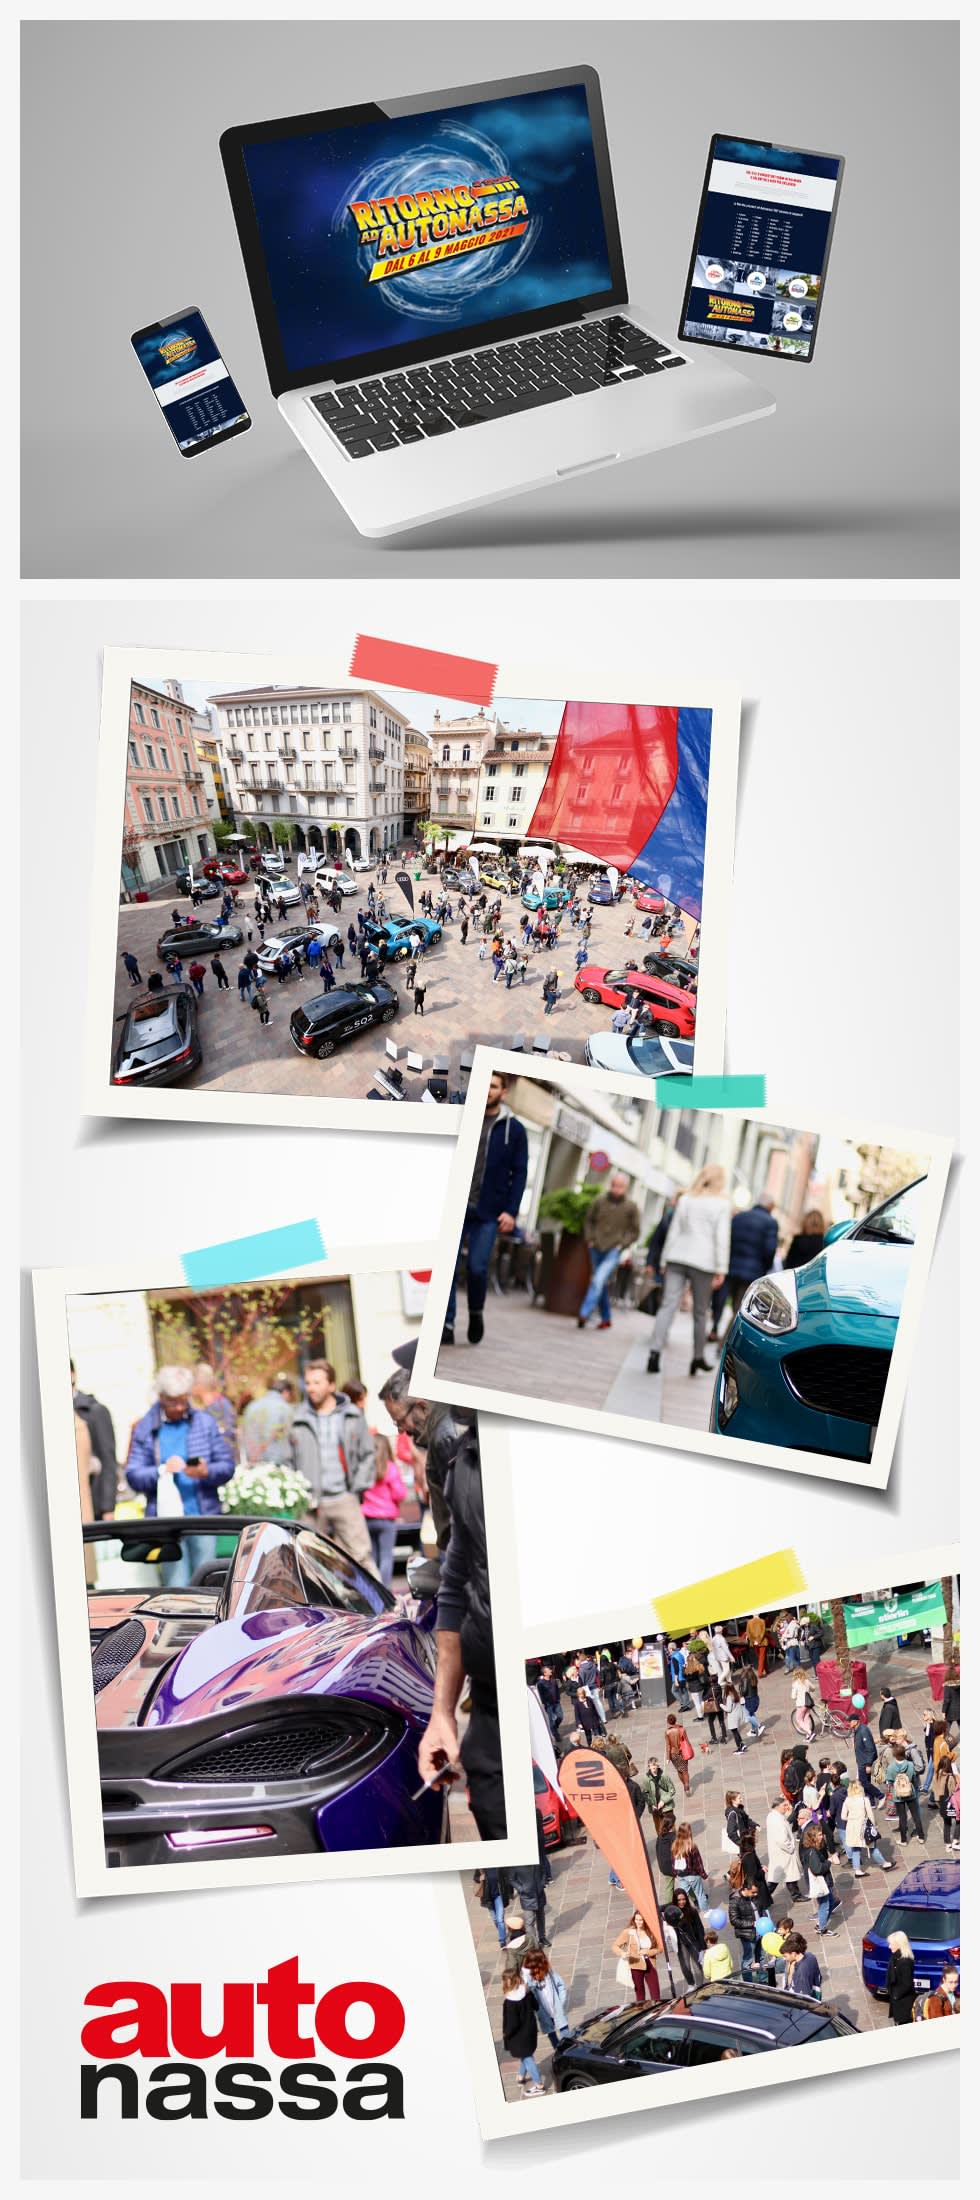 """Image of a webpage and multiple images of crowds with text """"Auto nassa"""""""